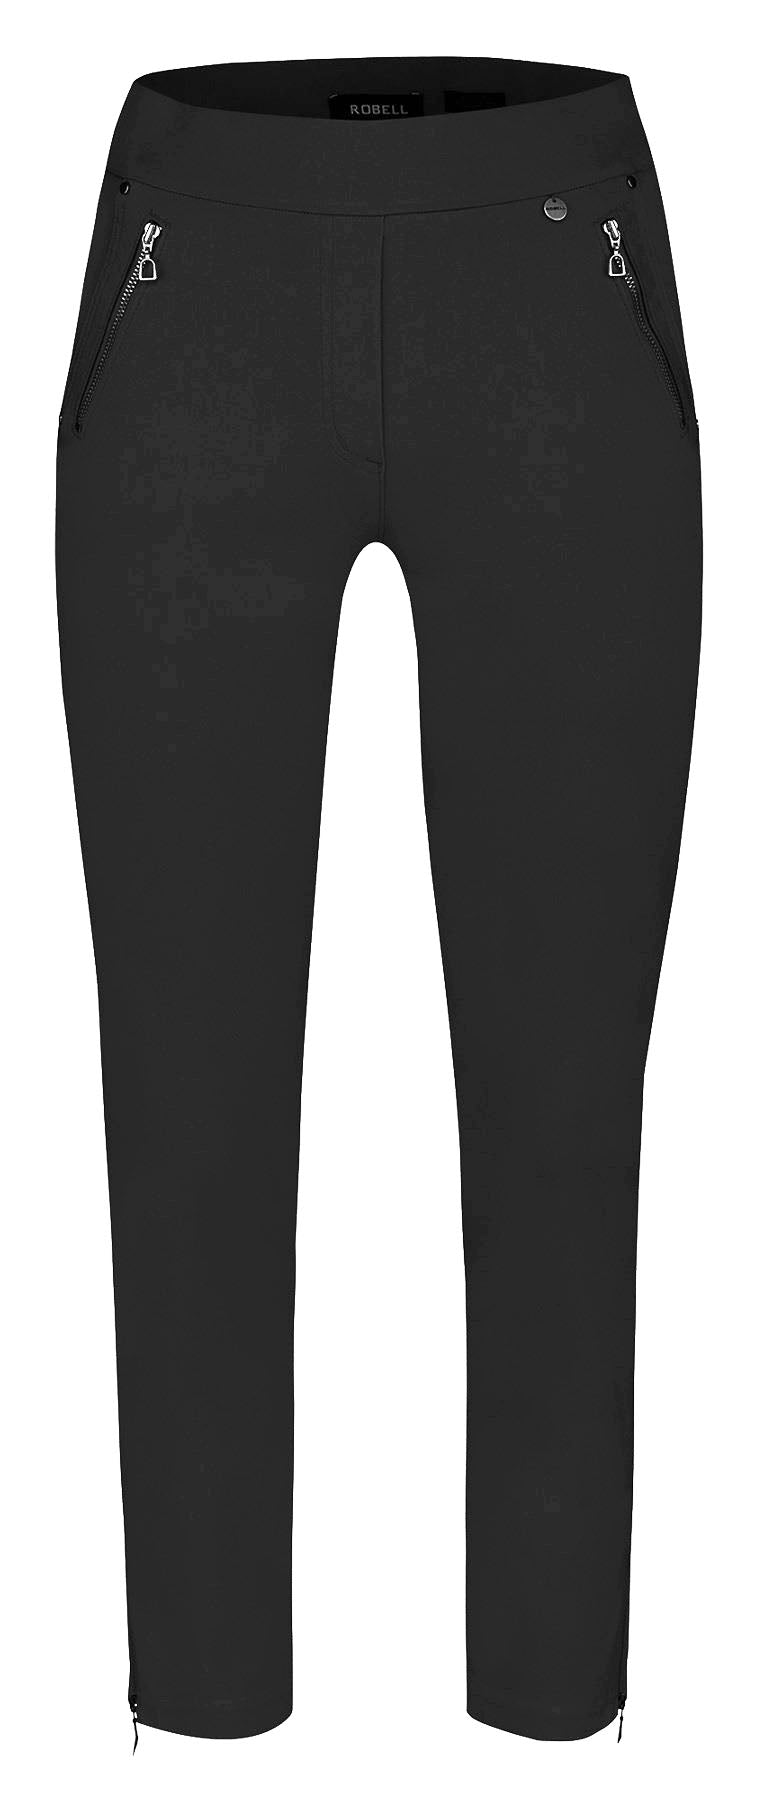 Robell Nena Trousers With Zip Ends - 7/8 Black - 52490W0